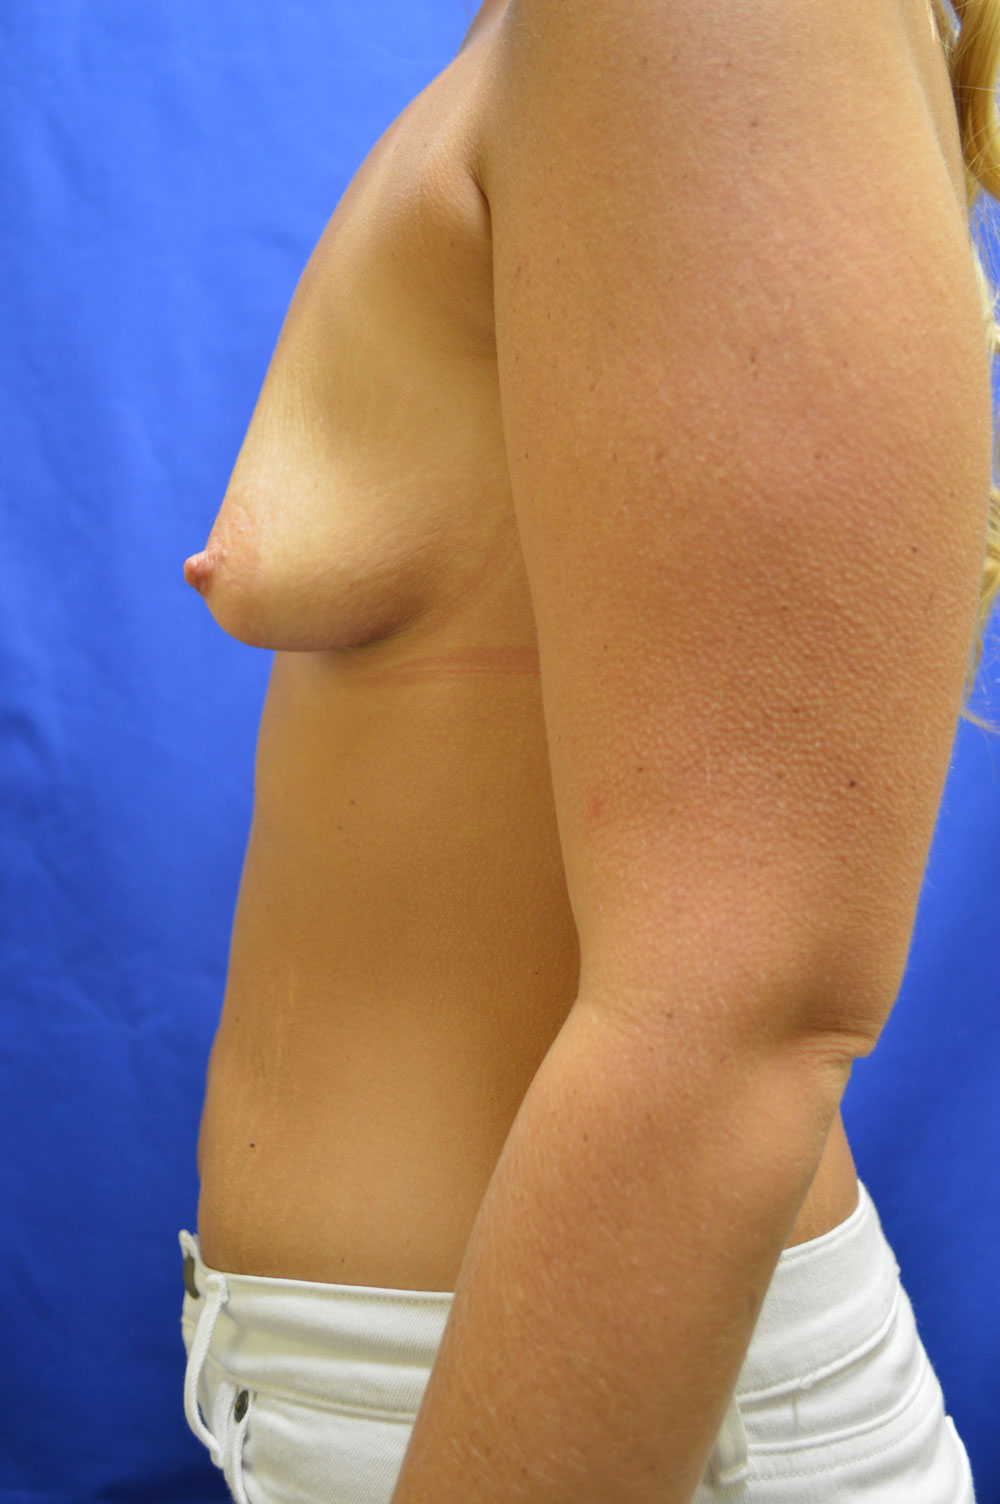 shewmake-breast-aug2-before.jpg